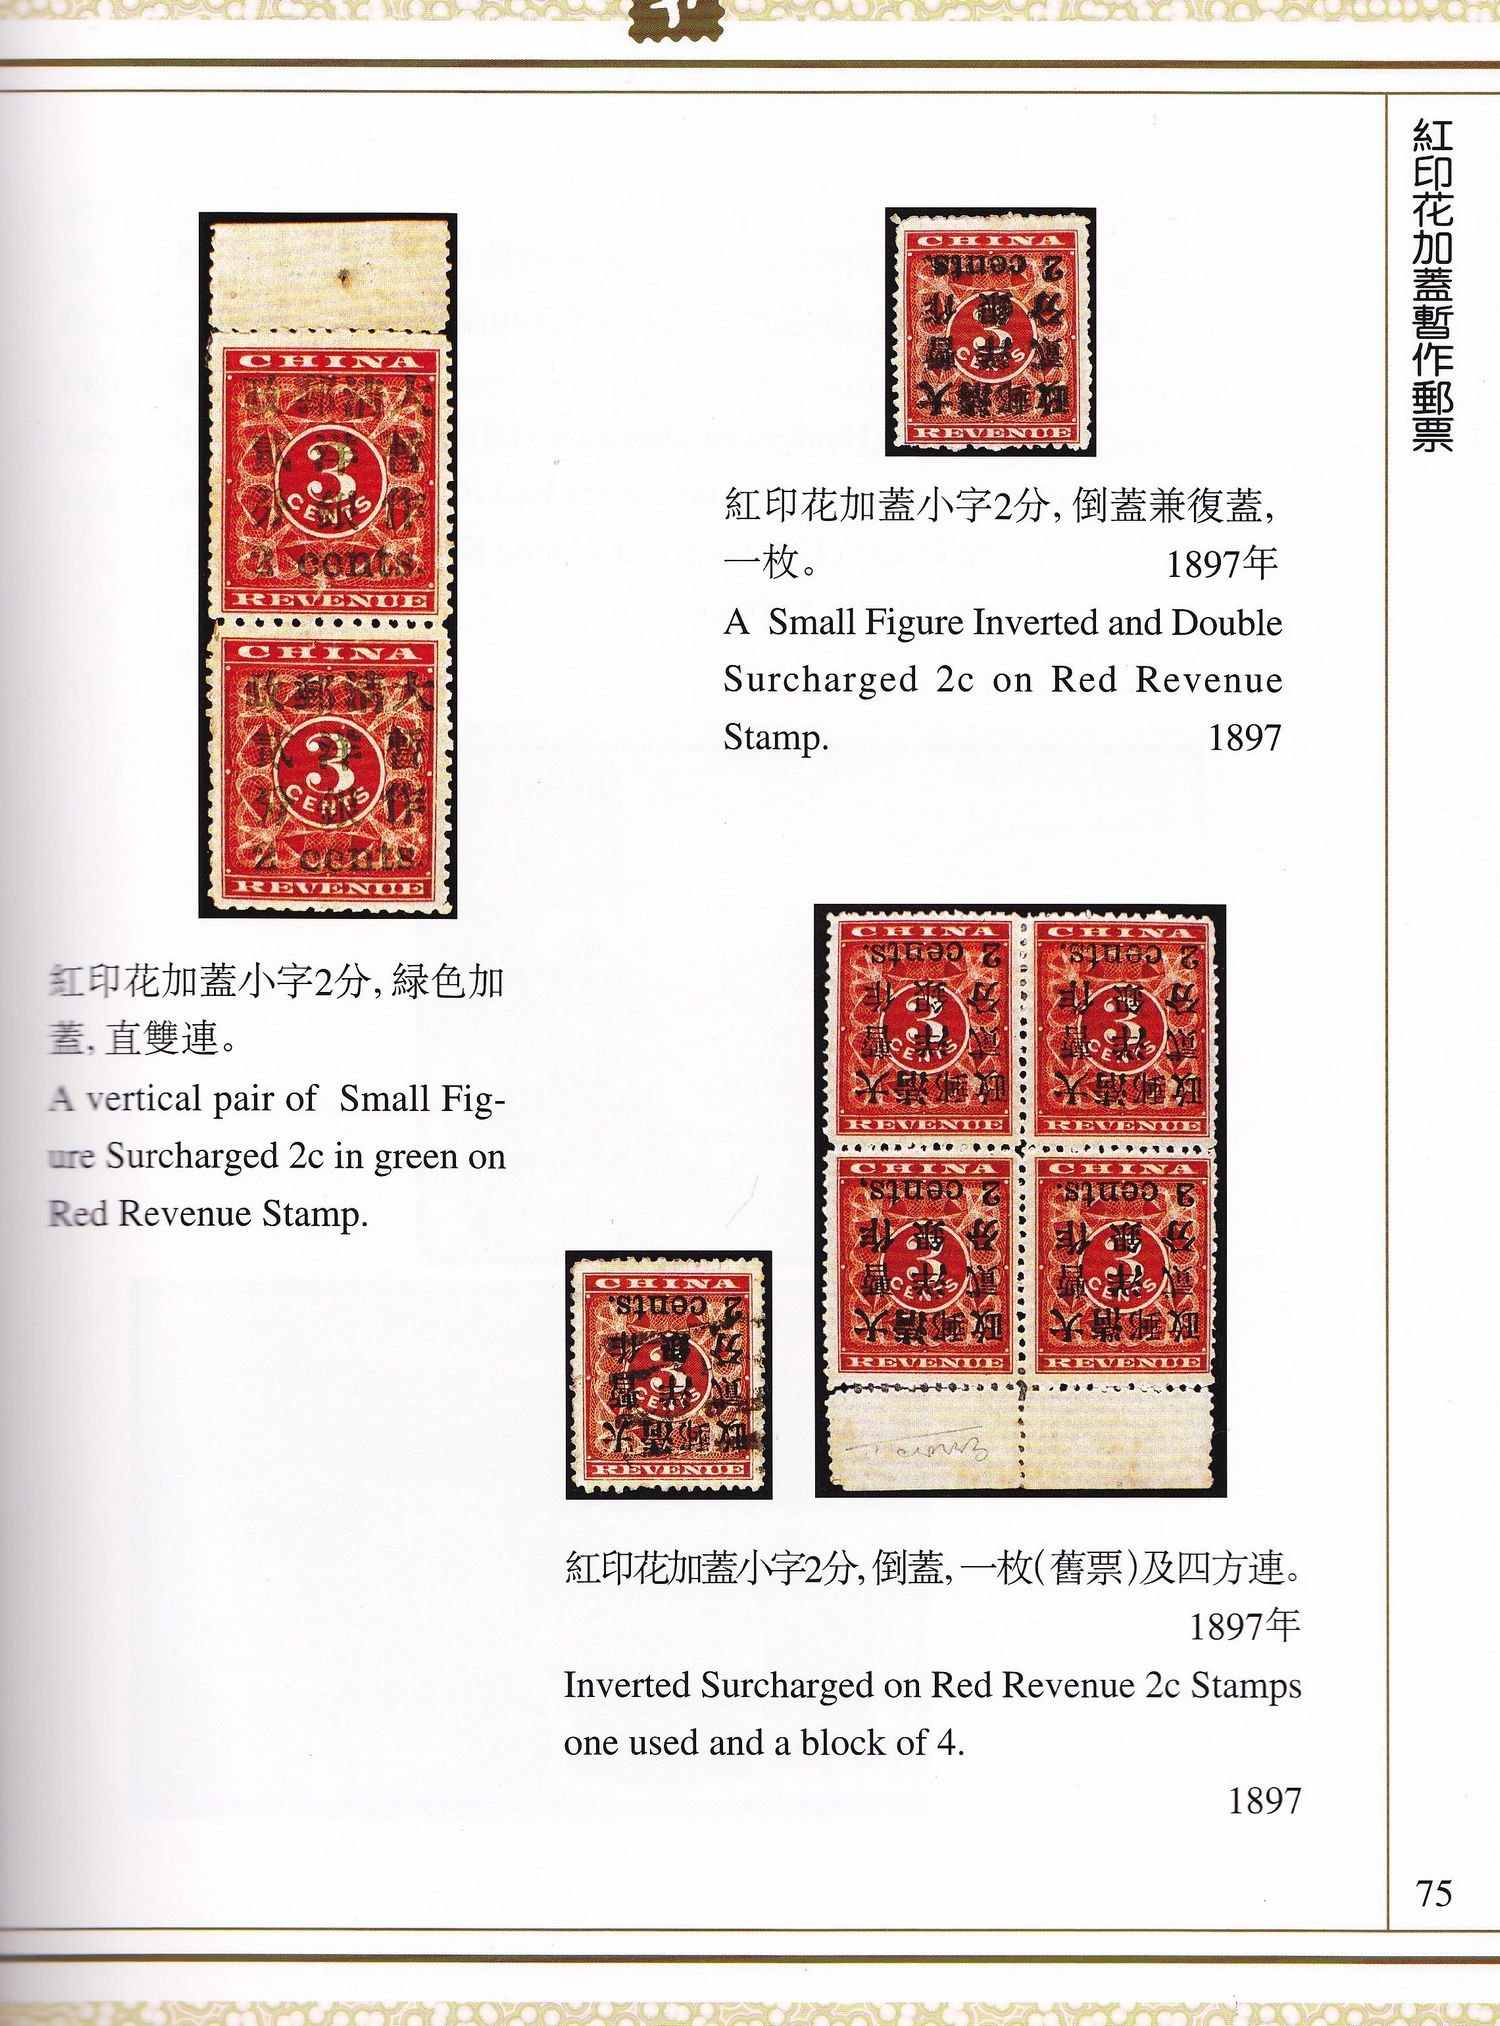 F2246, Selected Treasures of China Postage Stamp Museum (1999) - Click Image to Close